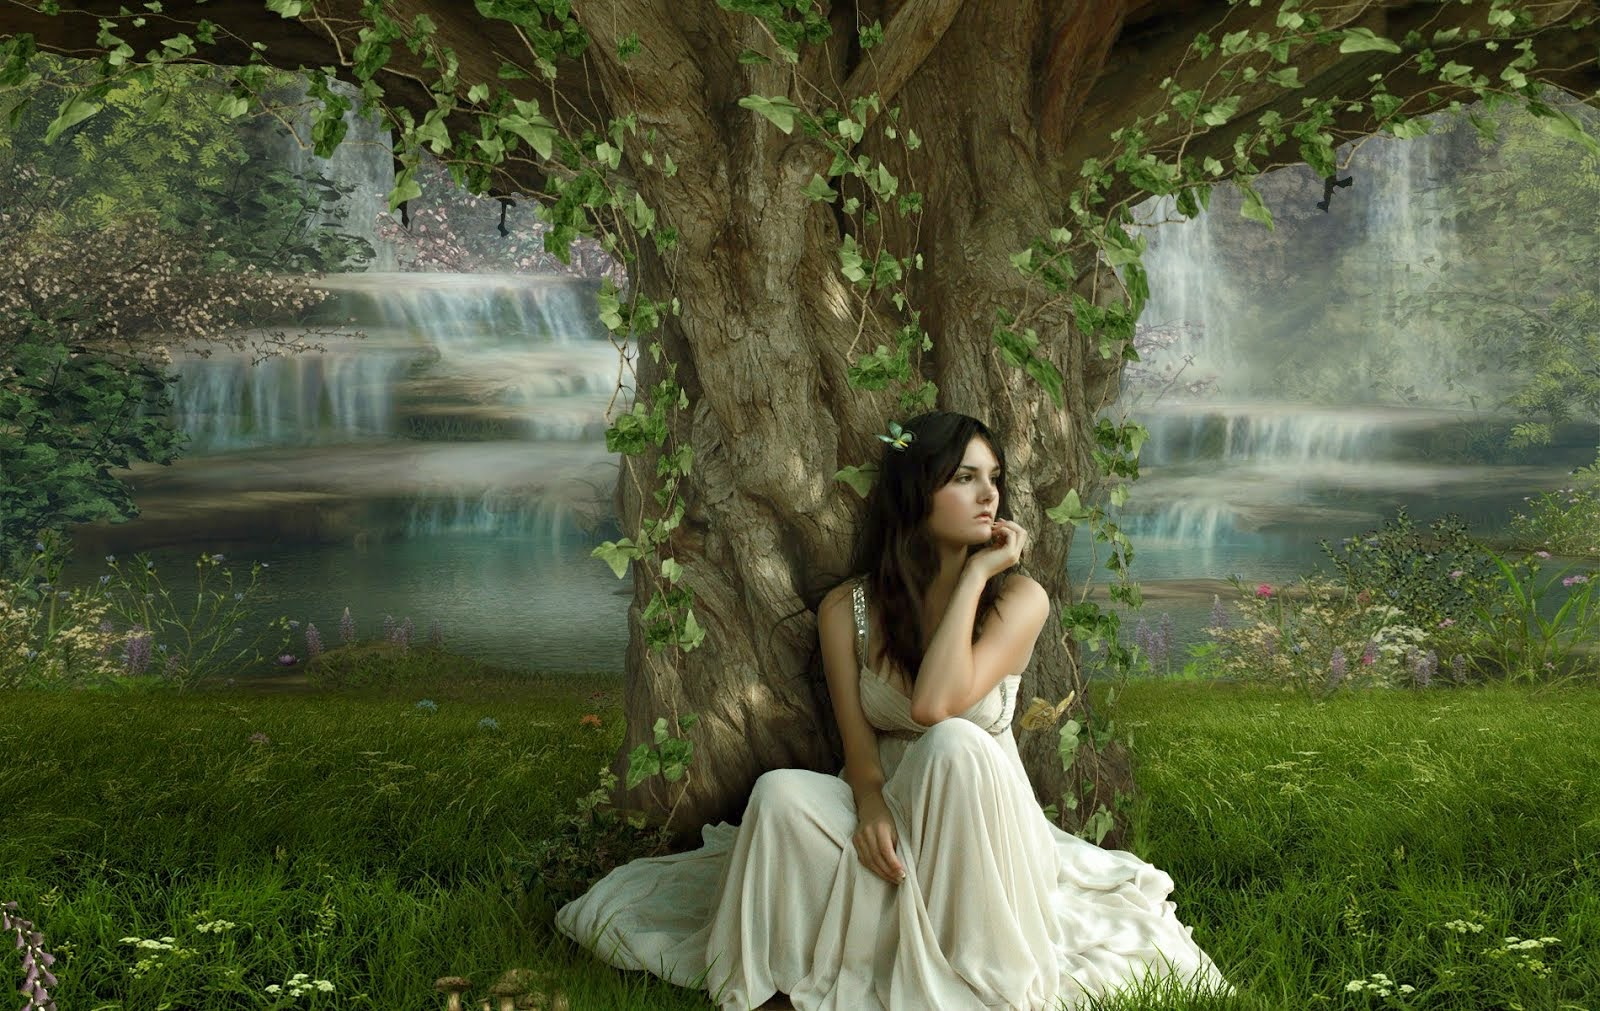 alone girl wallpapers download free high definition